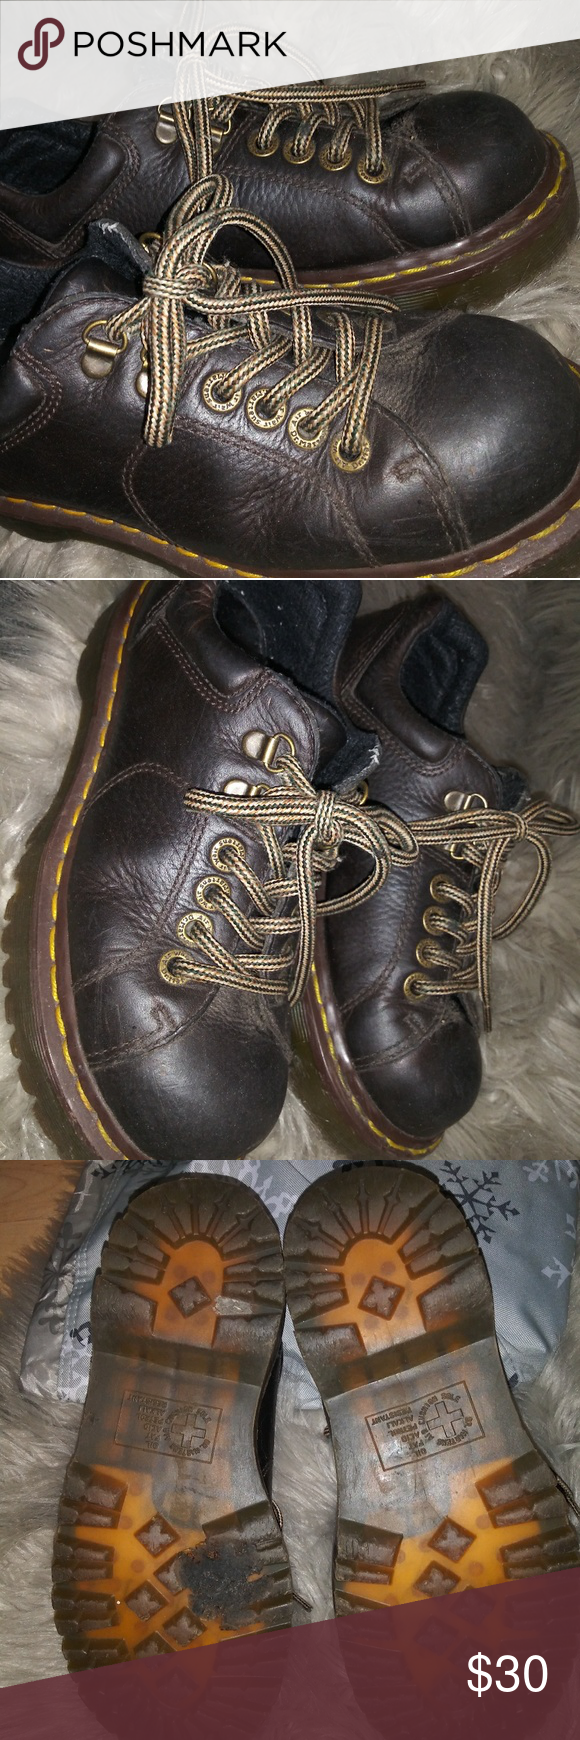 Vintage Doc Martins Dark Brown Leather Vintage Doc Martins